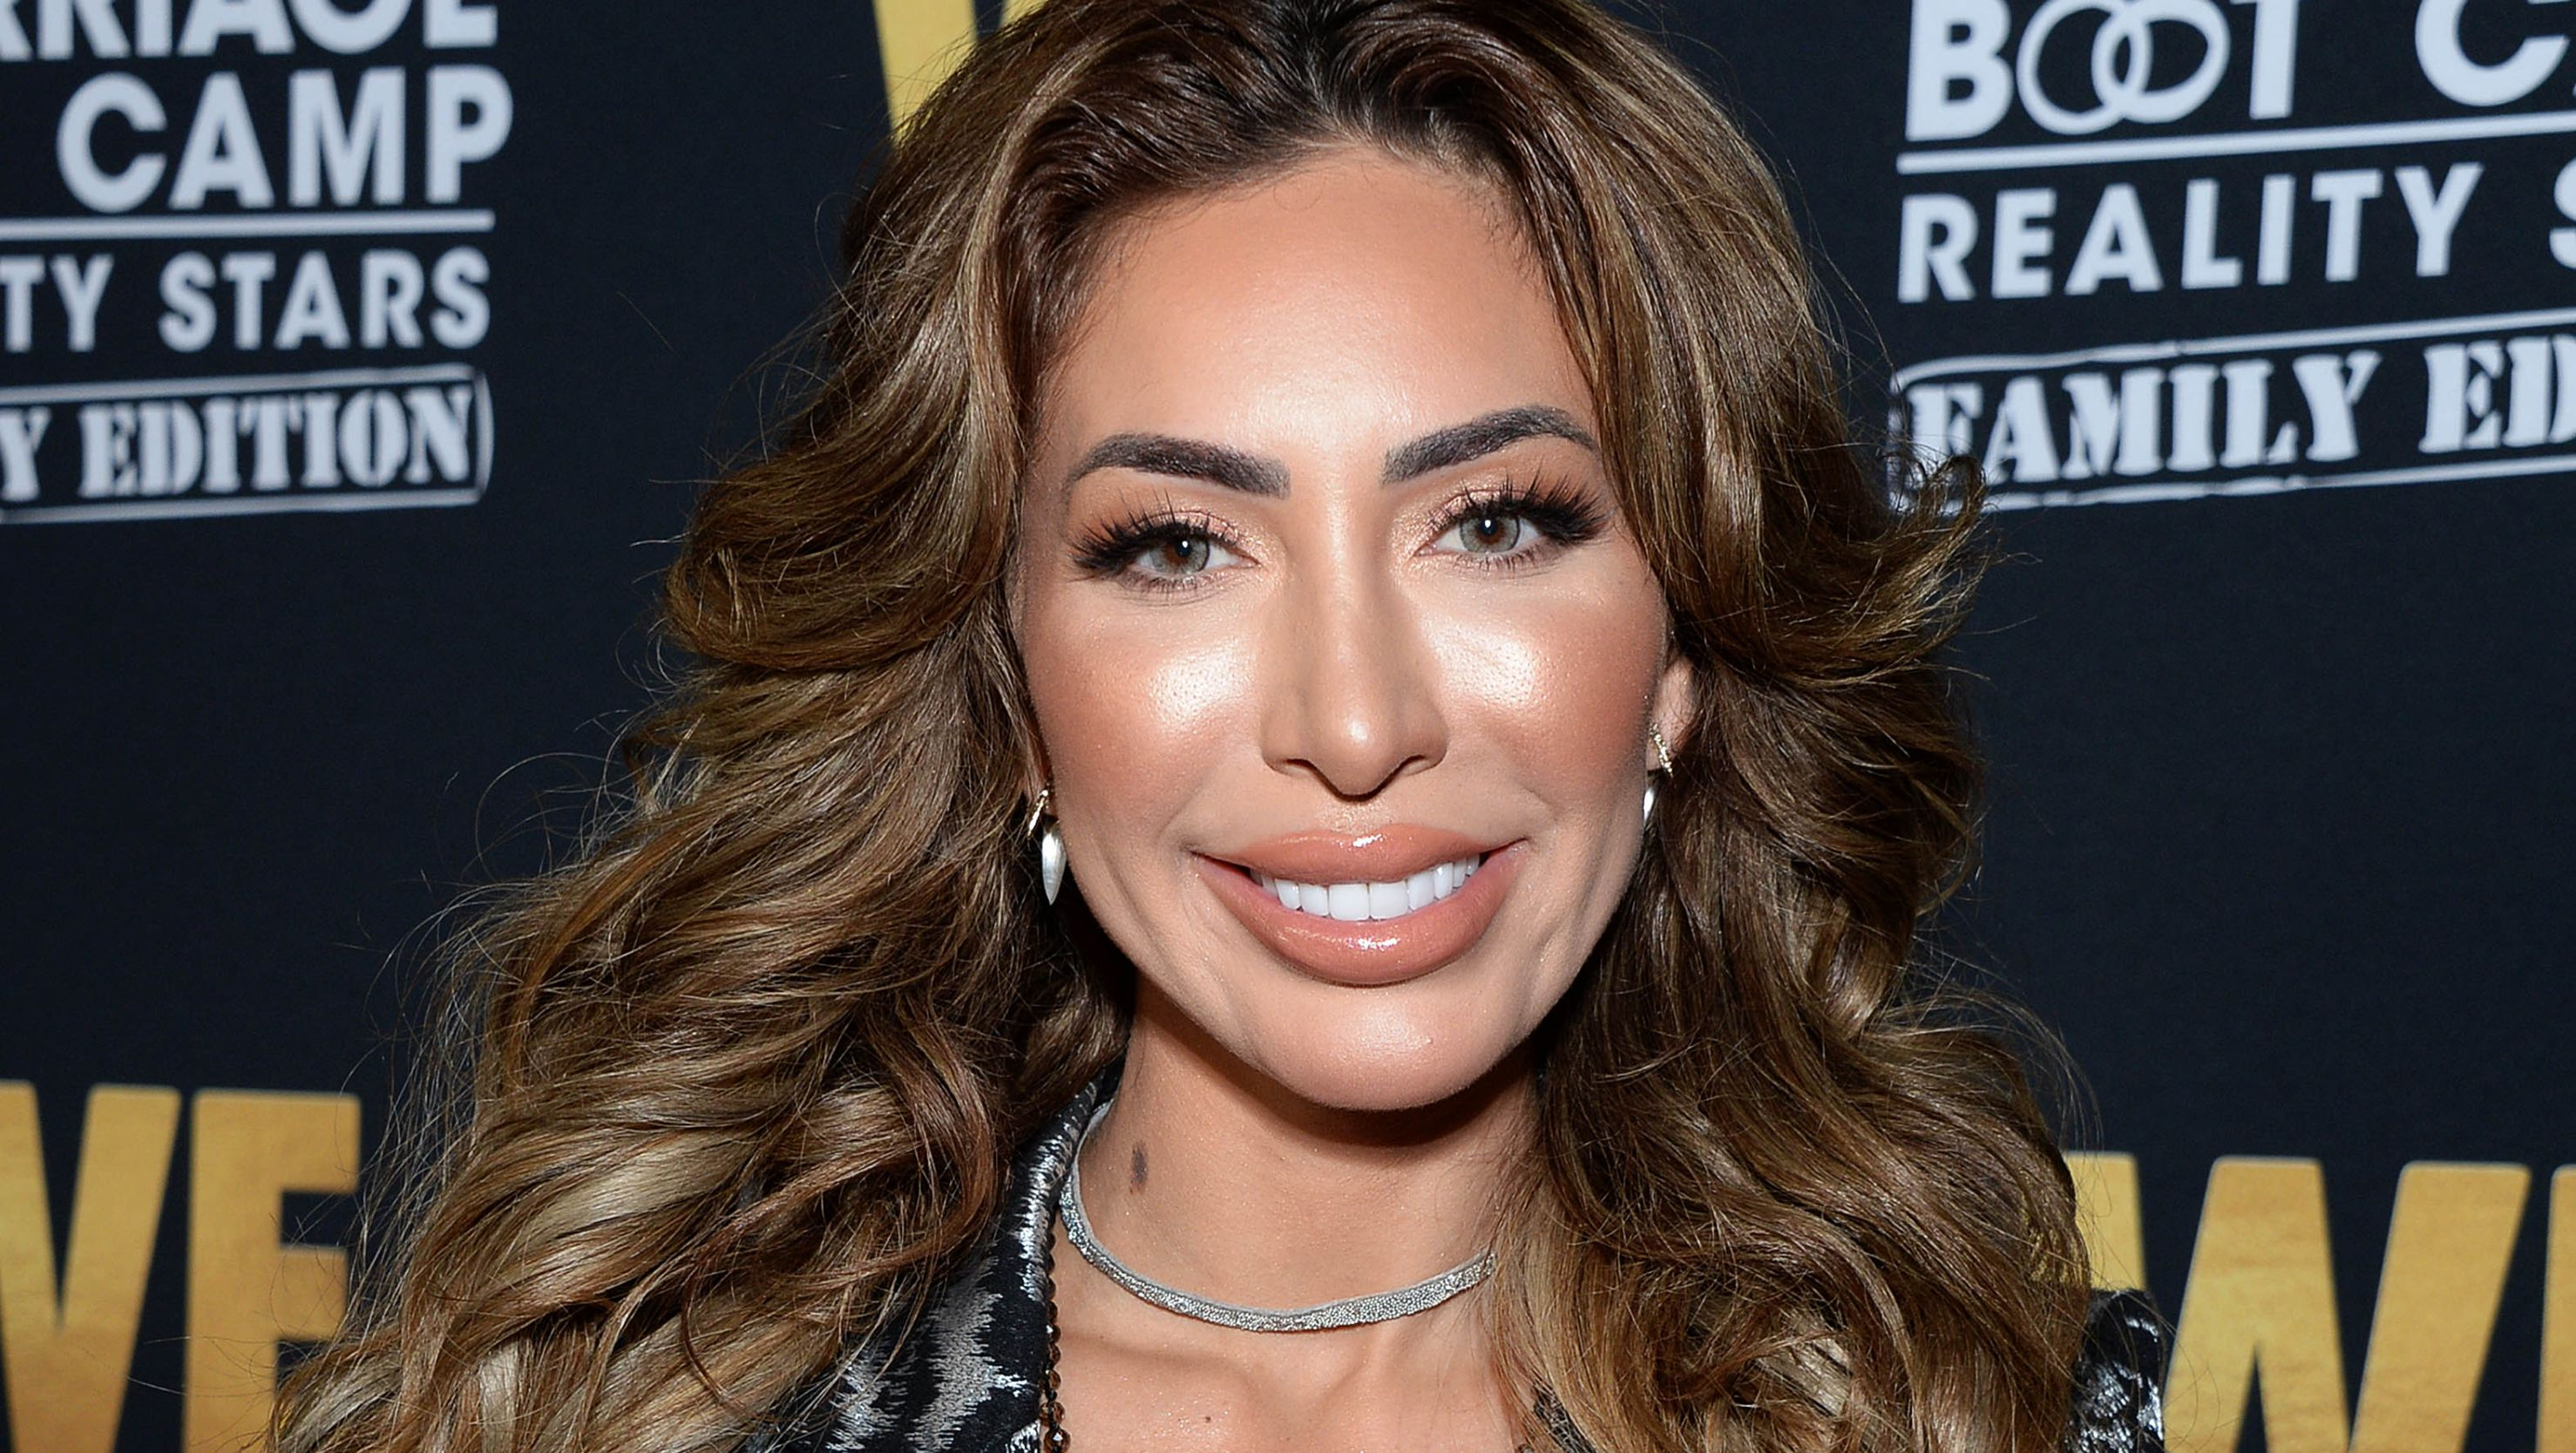 Farrah Abraham Takes 11-Year-Old Daughter To Botox Appointment